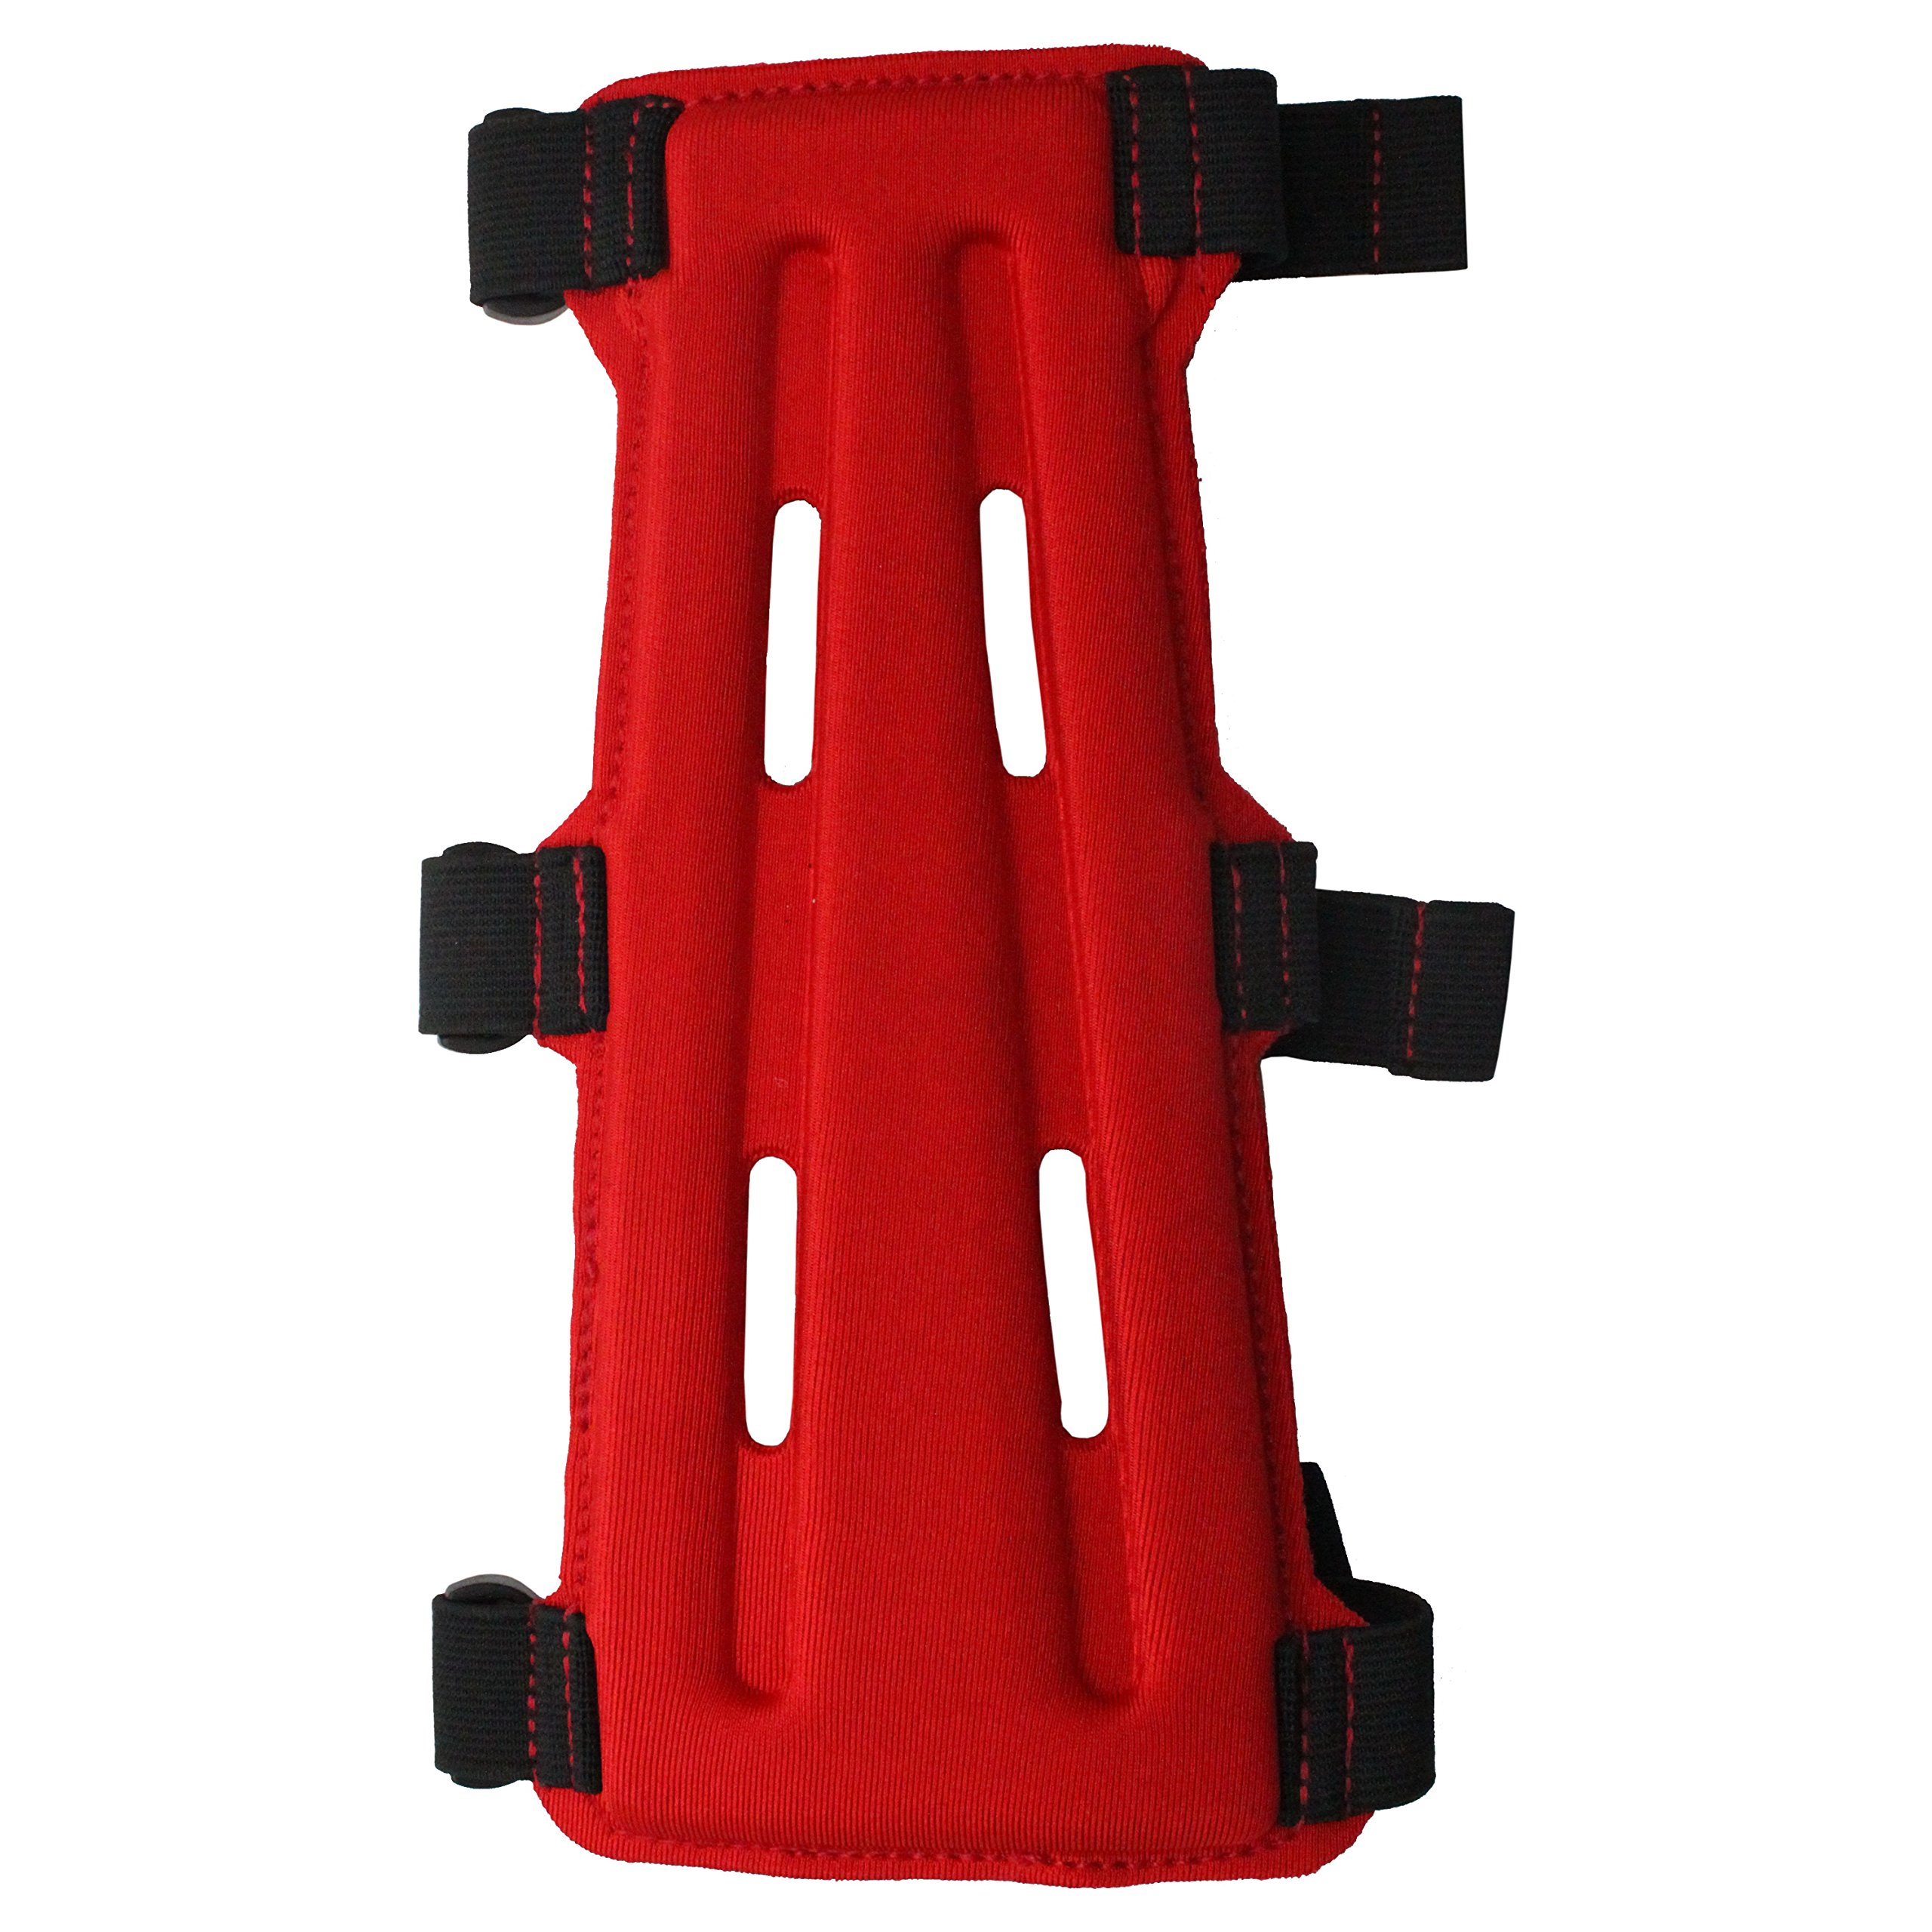 SAS 8'' Armguard Archery Bow Range with 3-Strap Buckles (Red) by Southland Archery Supply